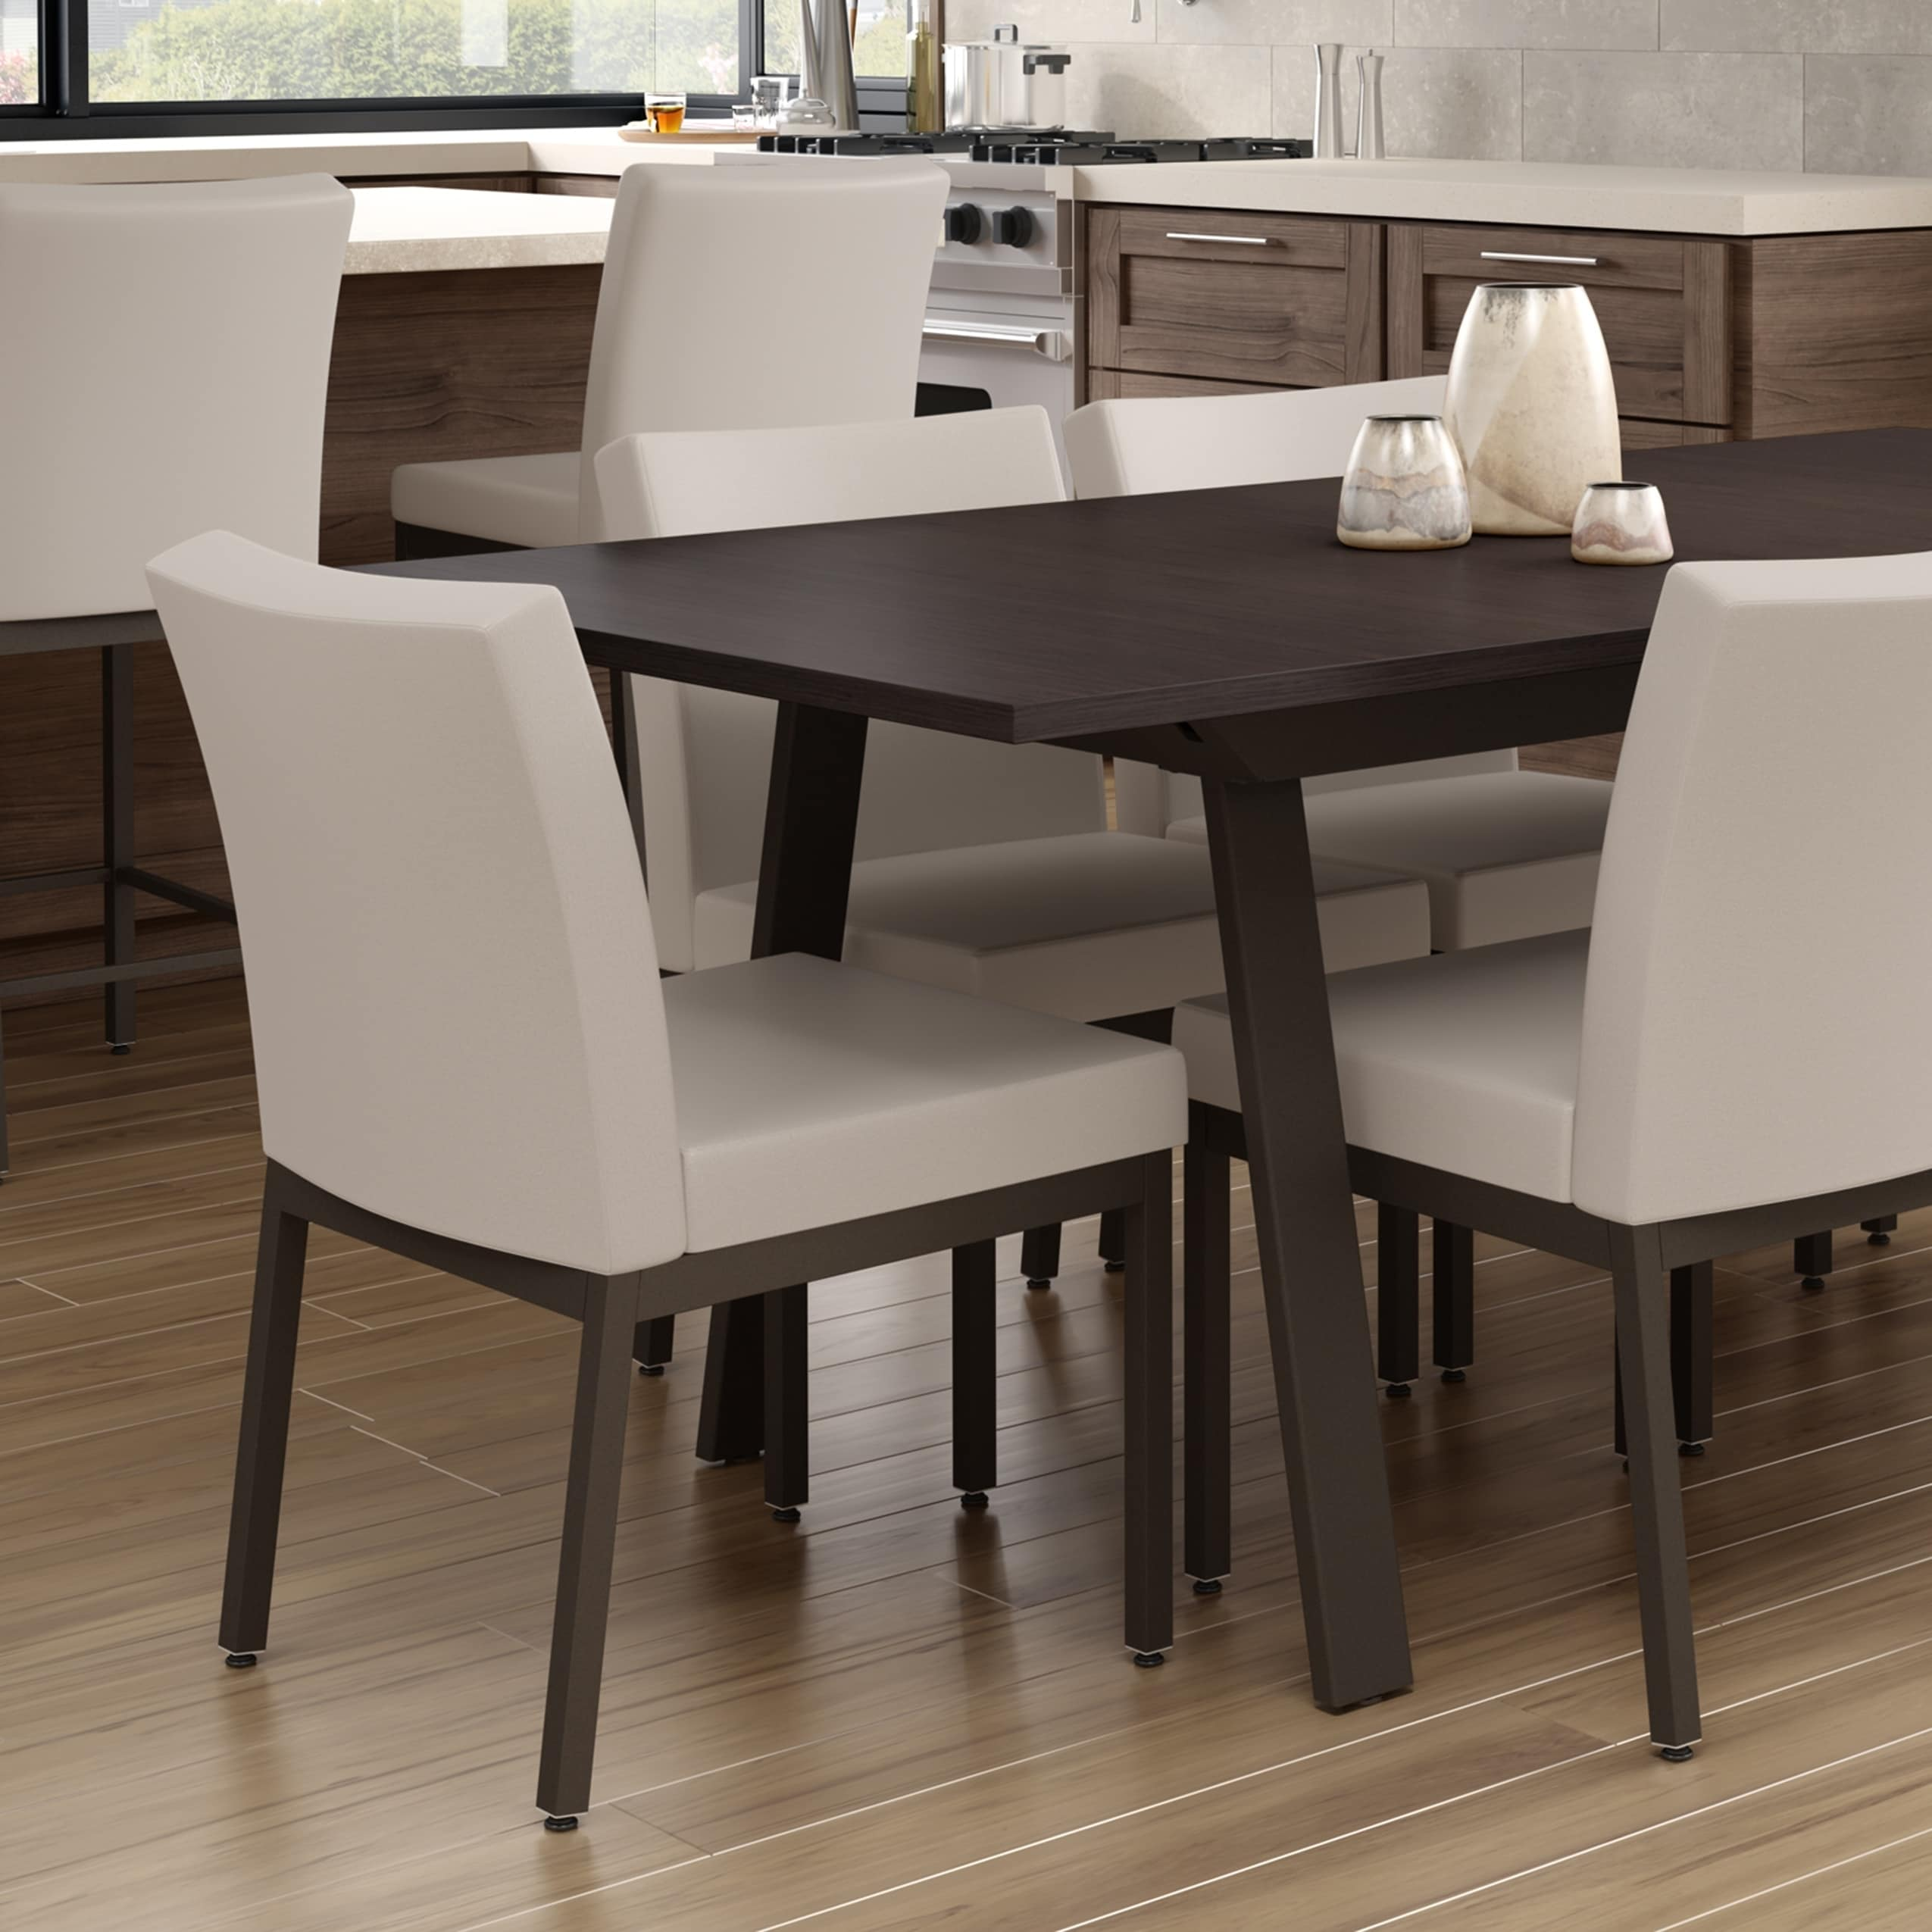 Amisco Perry Metal Chairs And Drift Extendable Table Dining Set